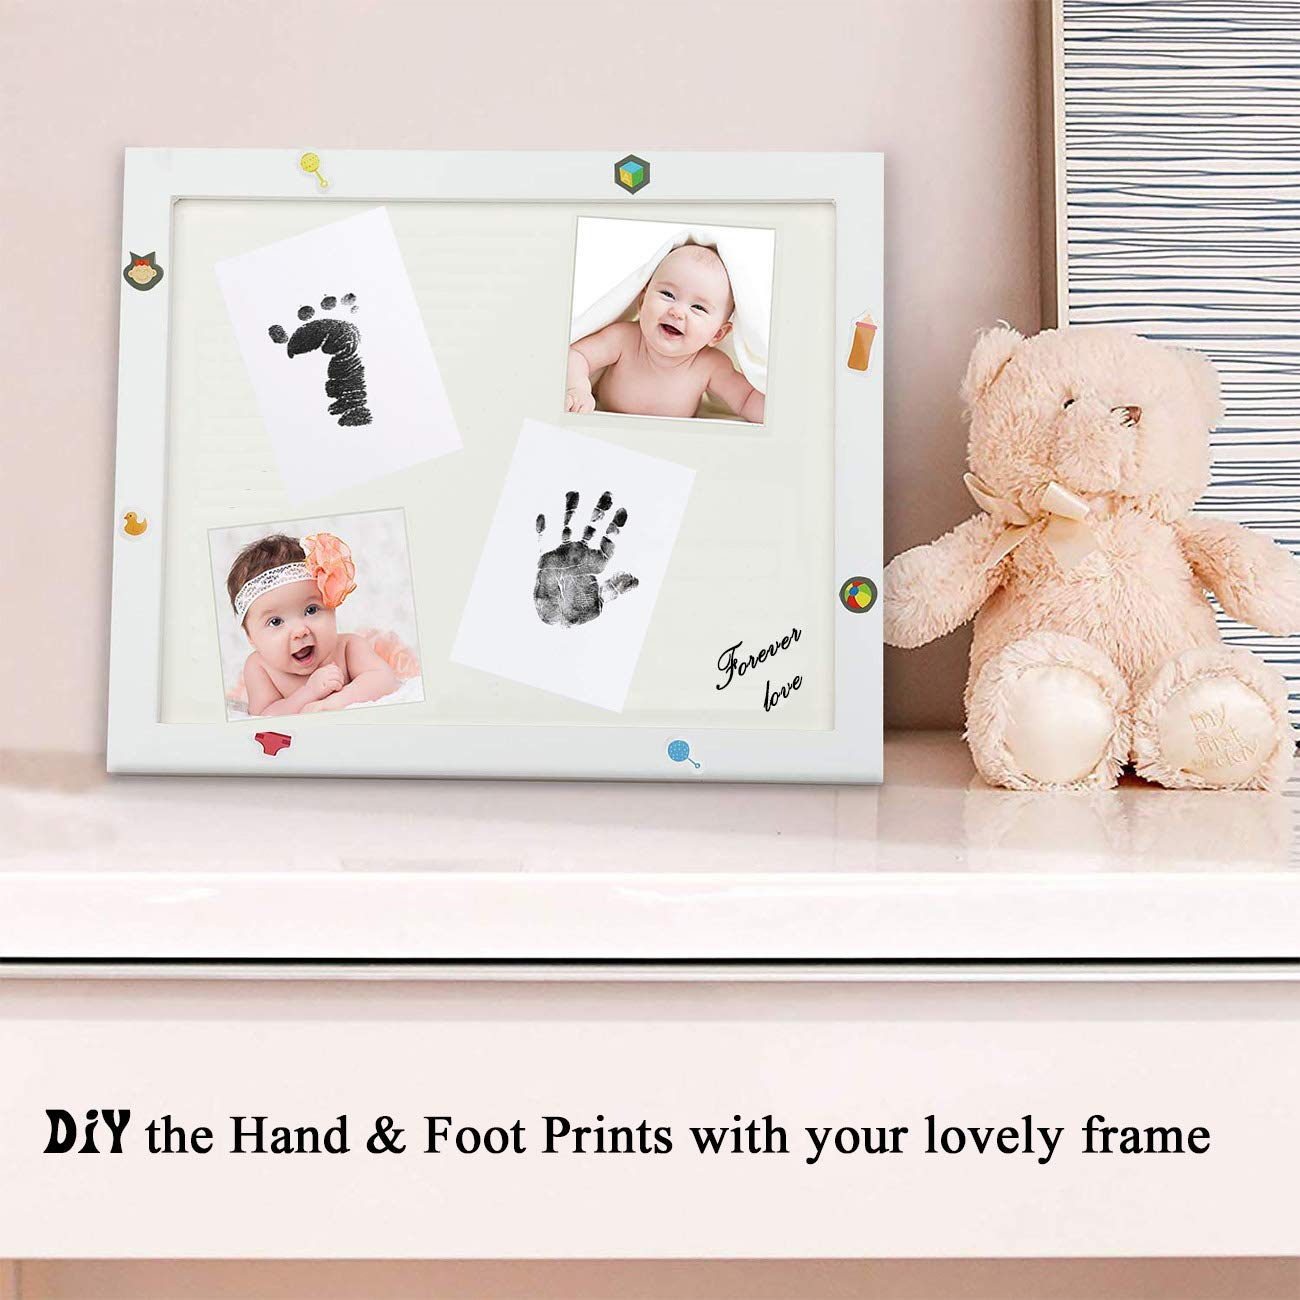 negro Nopson Baby Inkless Pad para huellas de beb/é Hand prints and Fingerprints Kit con 4 tarjetas de impresi/ón extra Perfect Keep Baby Memory Baby Shower Gift